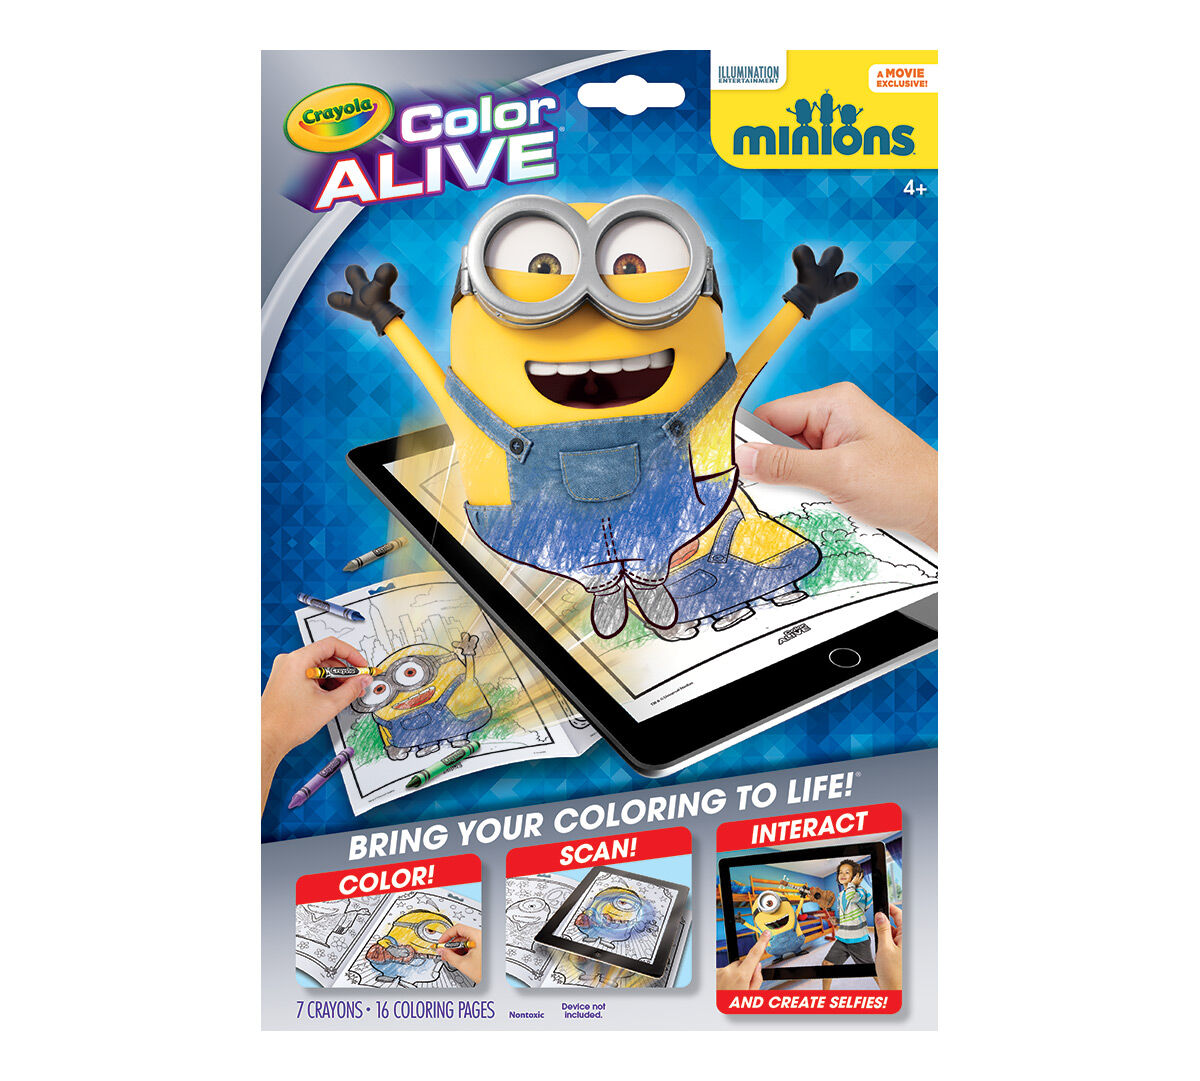 color alive minions - Crayola Color Alive Pages Minions